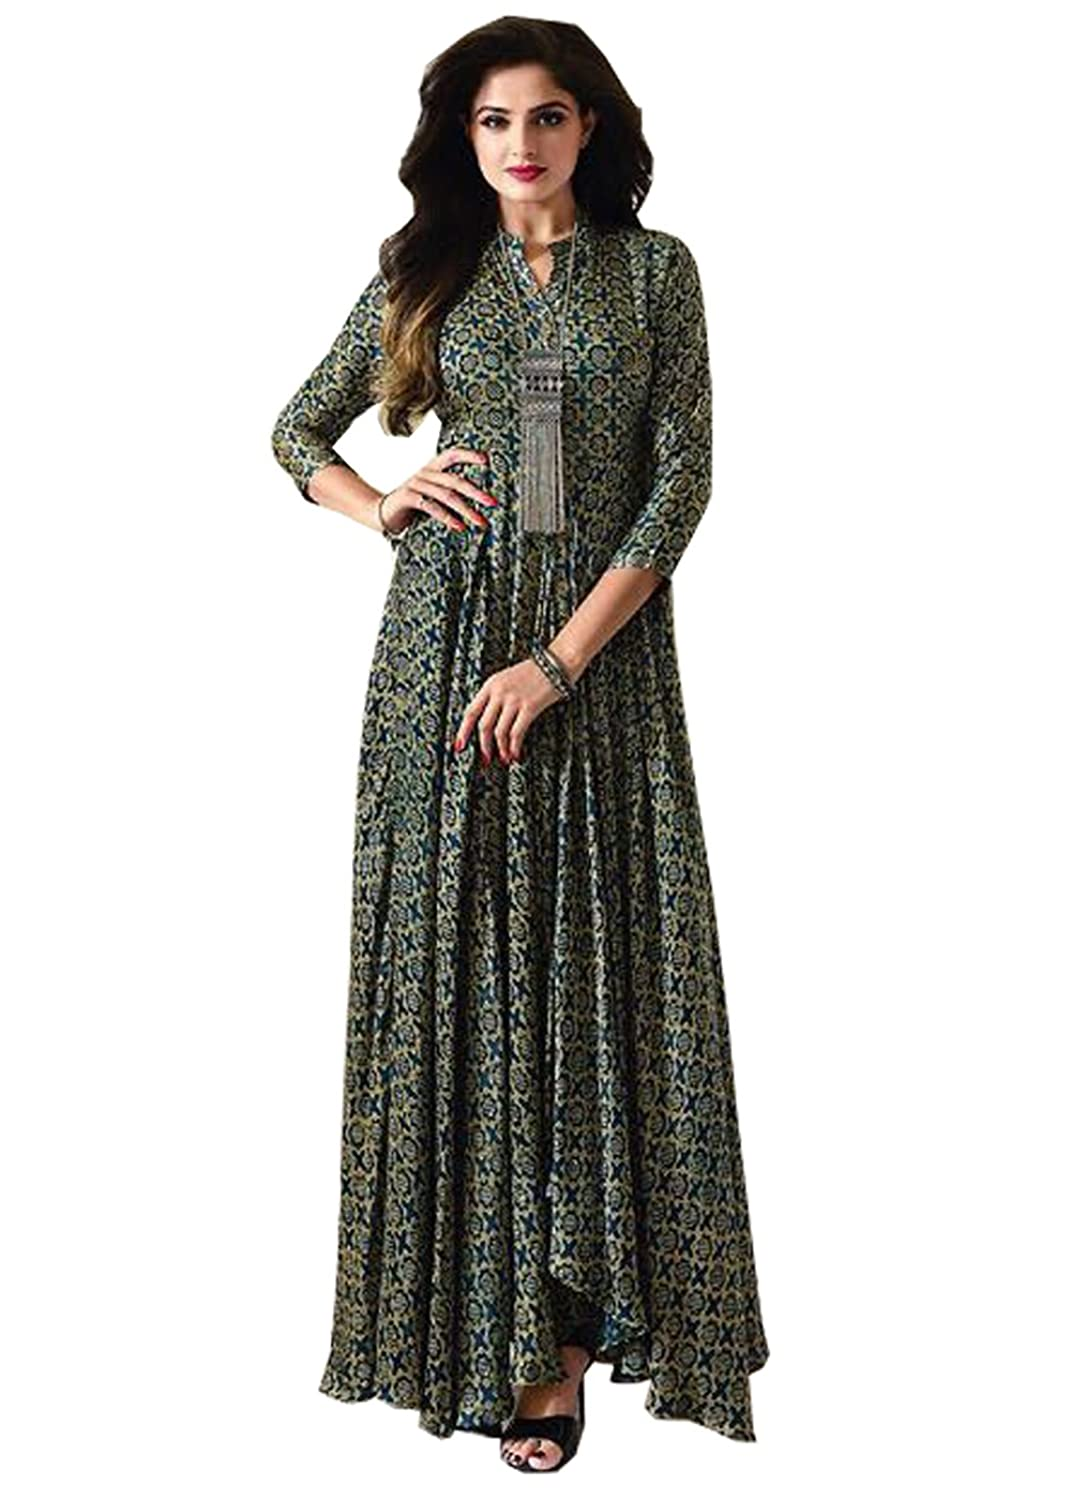 Women\'s Green Cotton Party Wear Gown Online Shopping - ShopperMb India